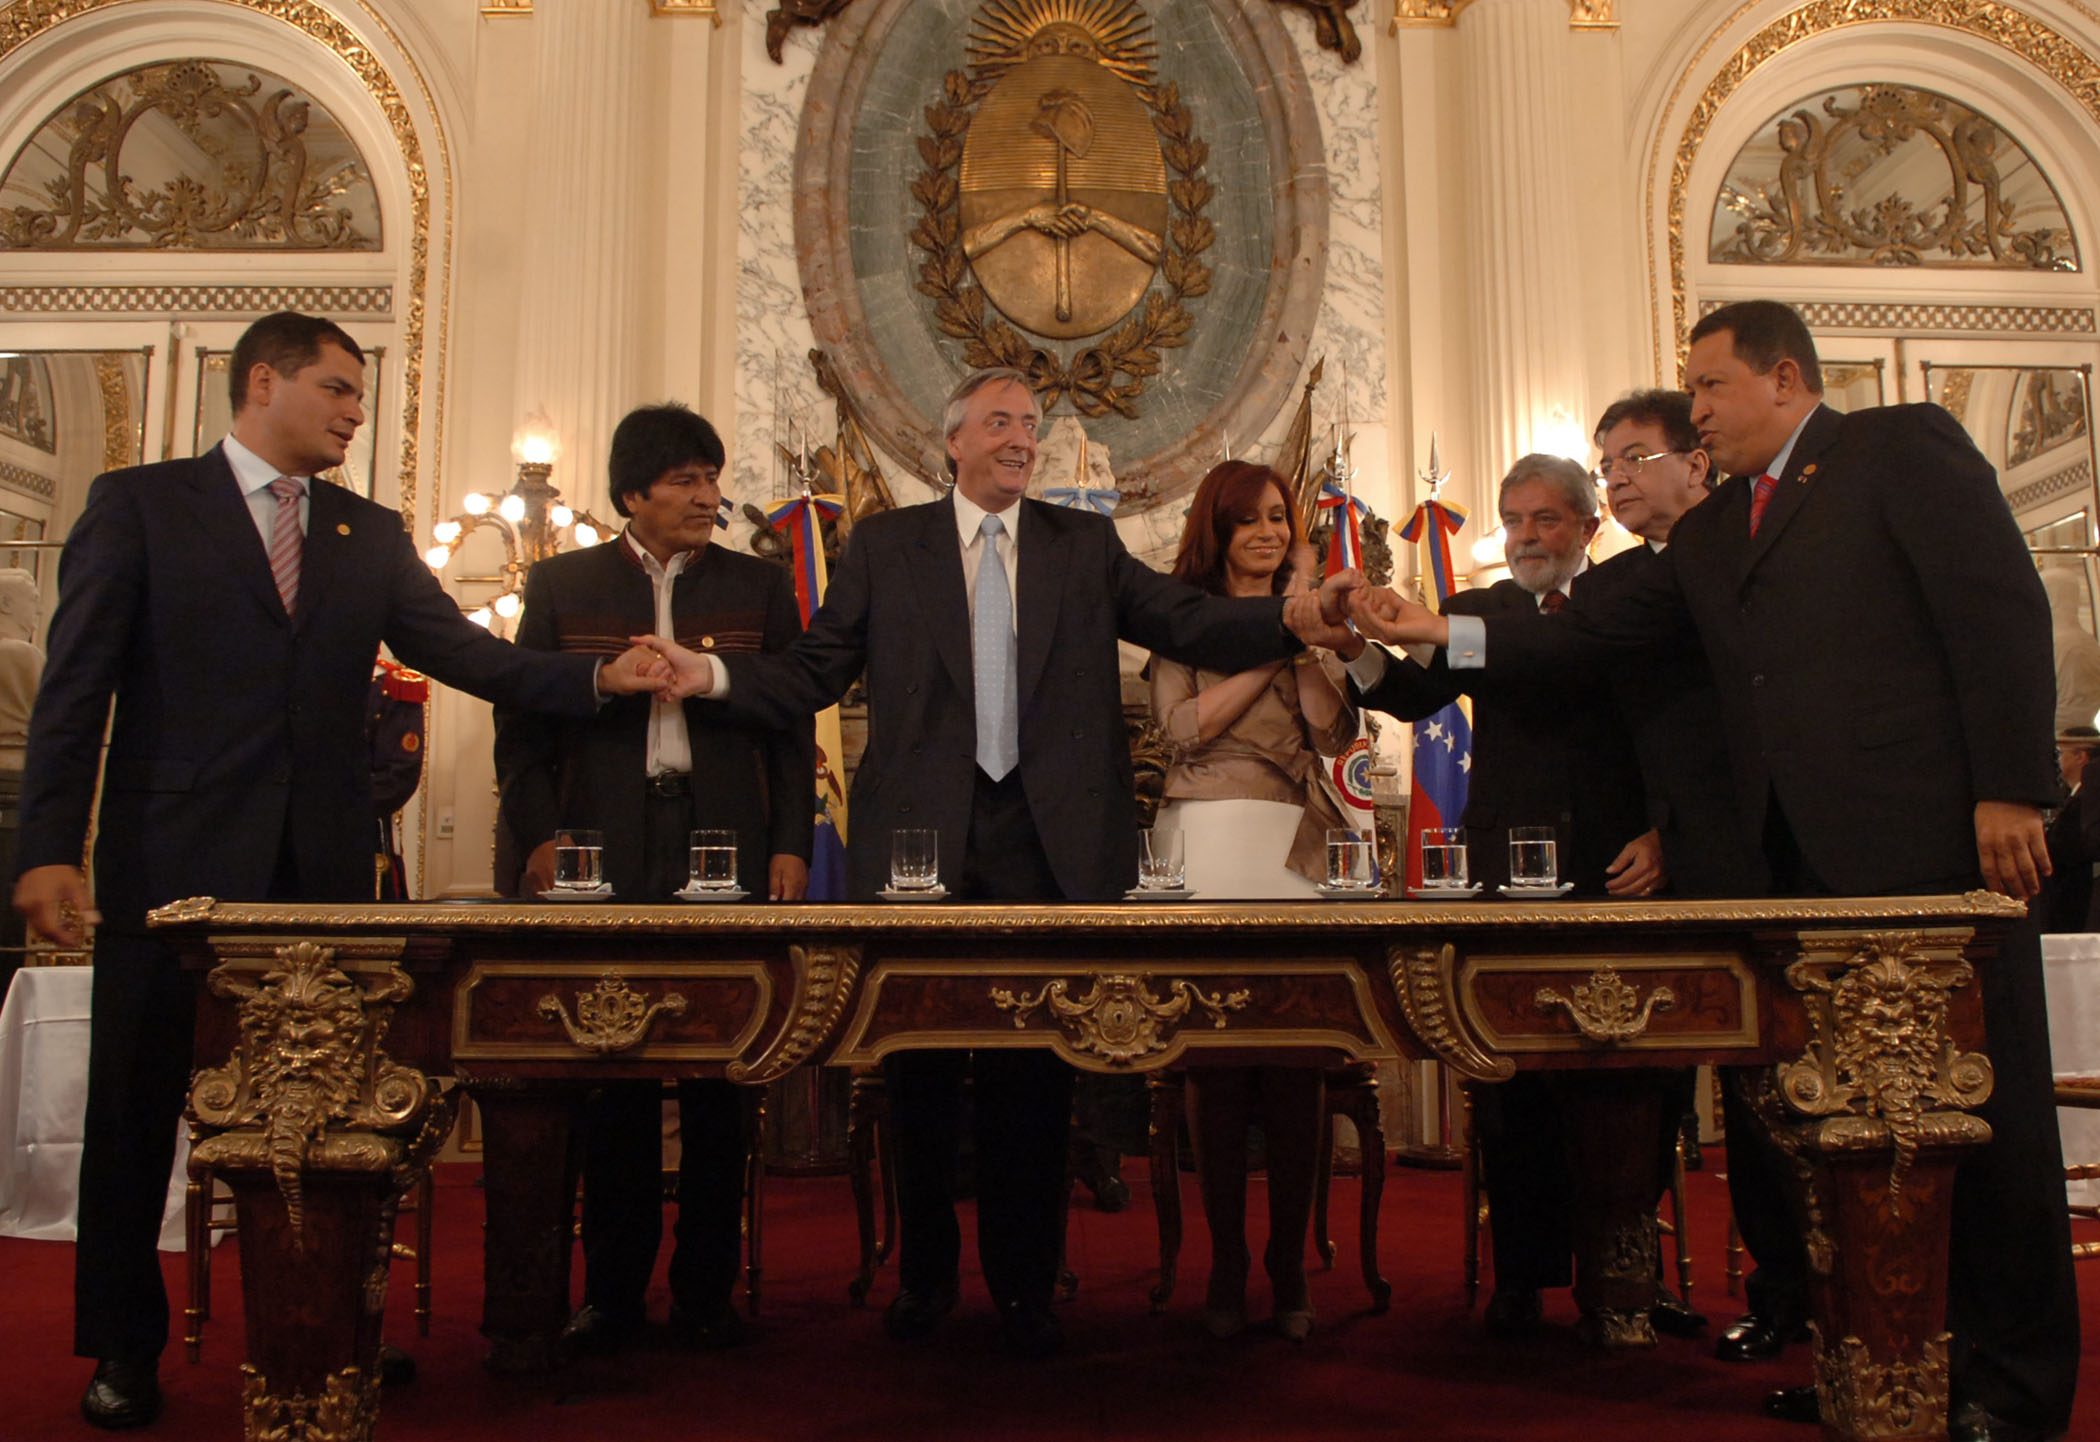 "South American Presidents at the signature of the Charter of the ""Bank of the South"" in 2009. From left to right: President Rafael Correa (Ecuador), President Evo Morales (Bolivia), President Nestor Kirchner (Argentina, 2003-2007), President Cristina Fernandez de Kirchner (2007-2015), President Luiz Inacio Lula da Silva (Brasil, 2003-2011), President Oscar Nicanor Duarte Frutos(Paraguay, 2003-2008) and President Hugo Chavez (Venezuela, 1999-2013)"